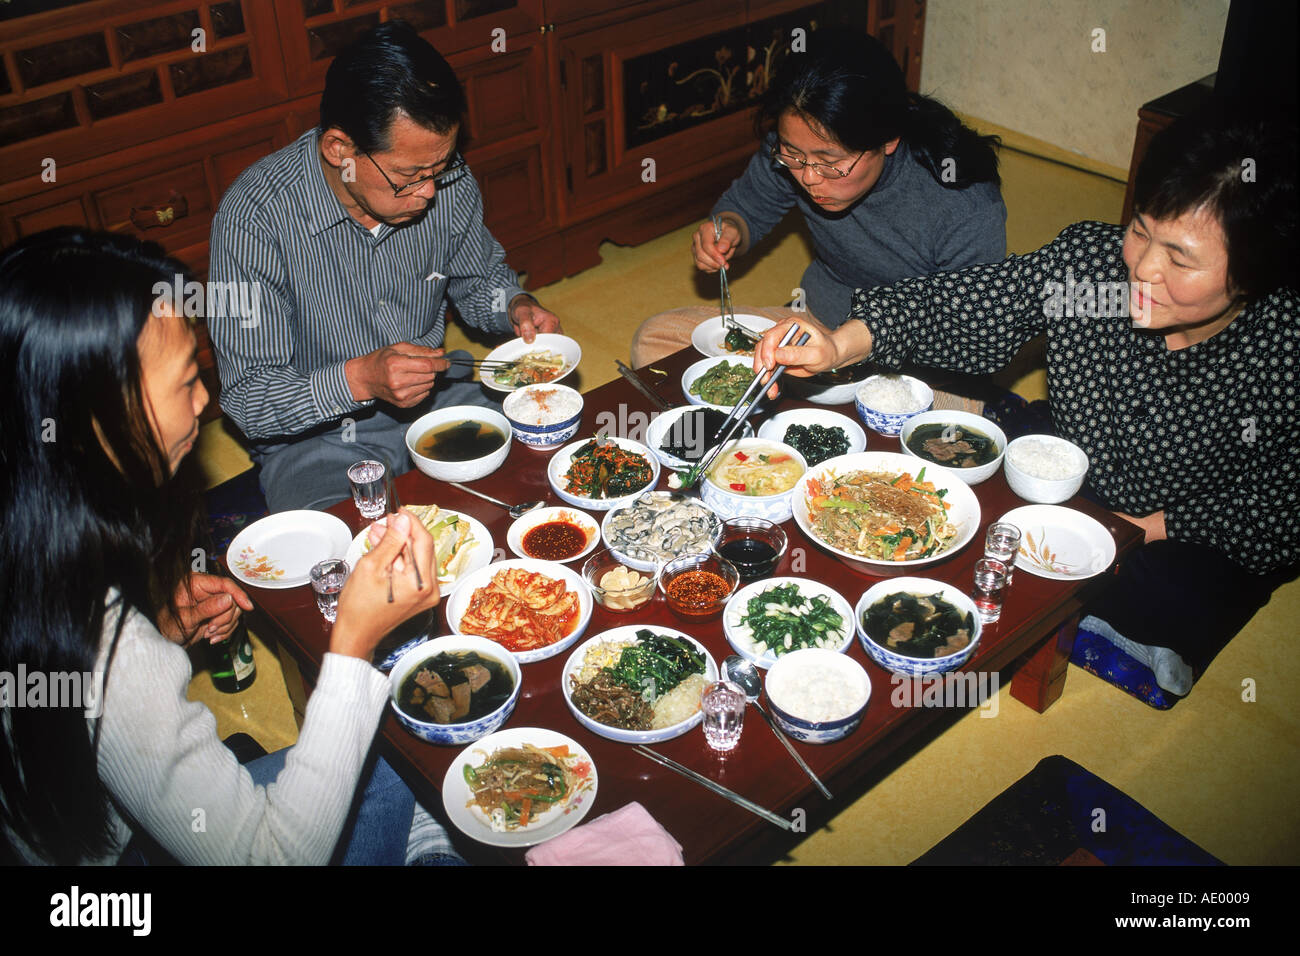 Family sitting at dinner table eating variety of home made Korean foods in South Korea Stock Photo